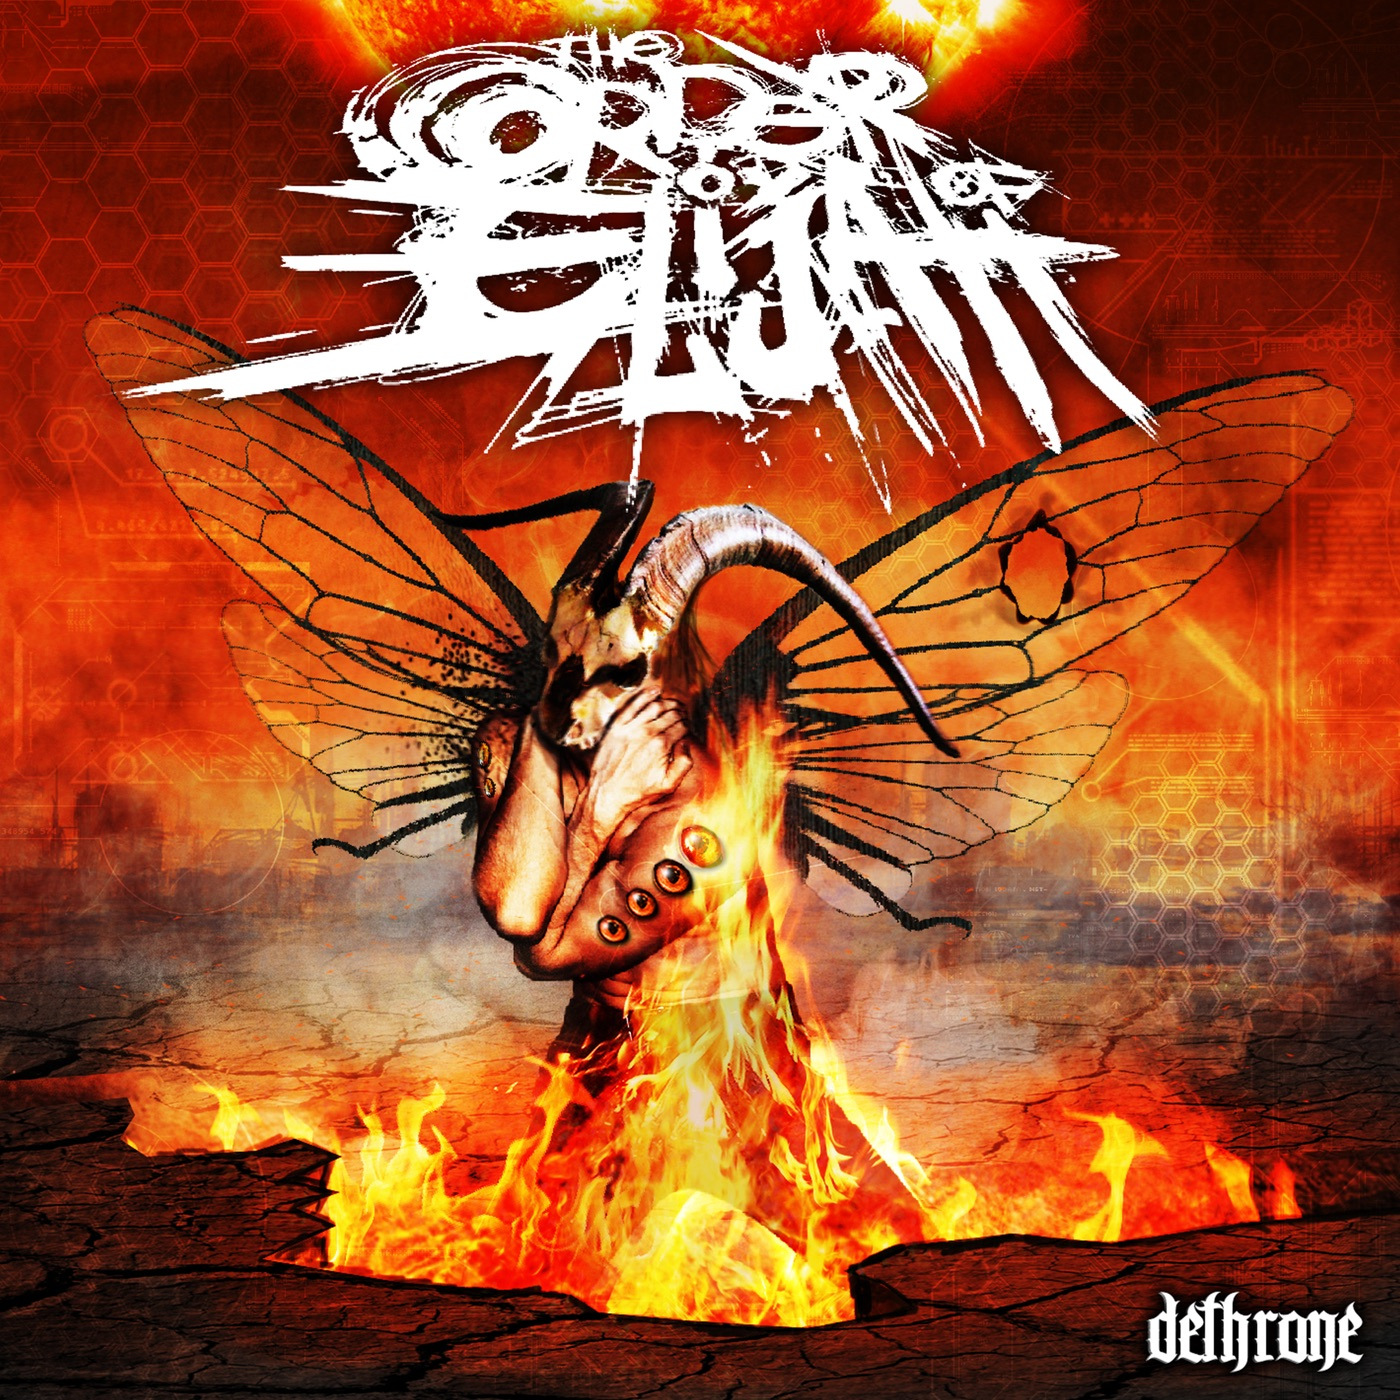 The Order Of Elijah - Dethrone (2013)